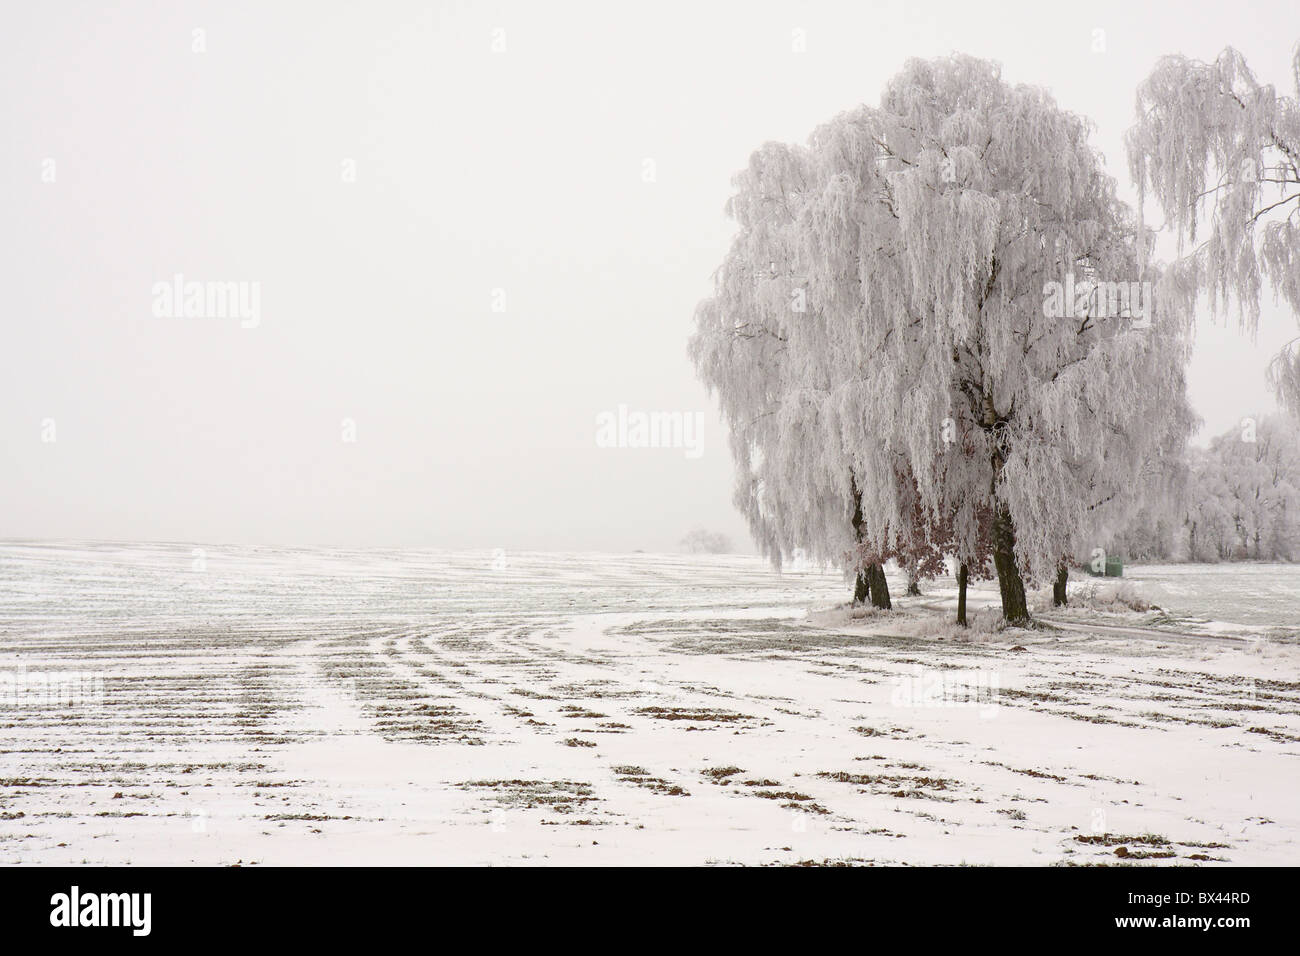 Shot of trees the morning after a very cold night, heavy hoar frost, mixed with remnants of snow. - Stock Image